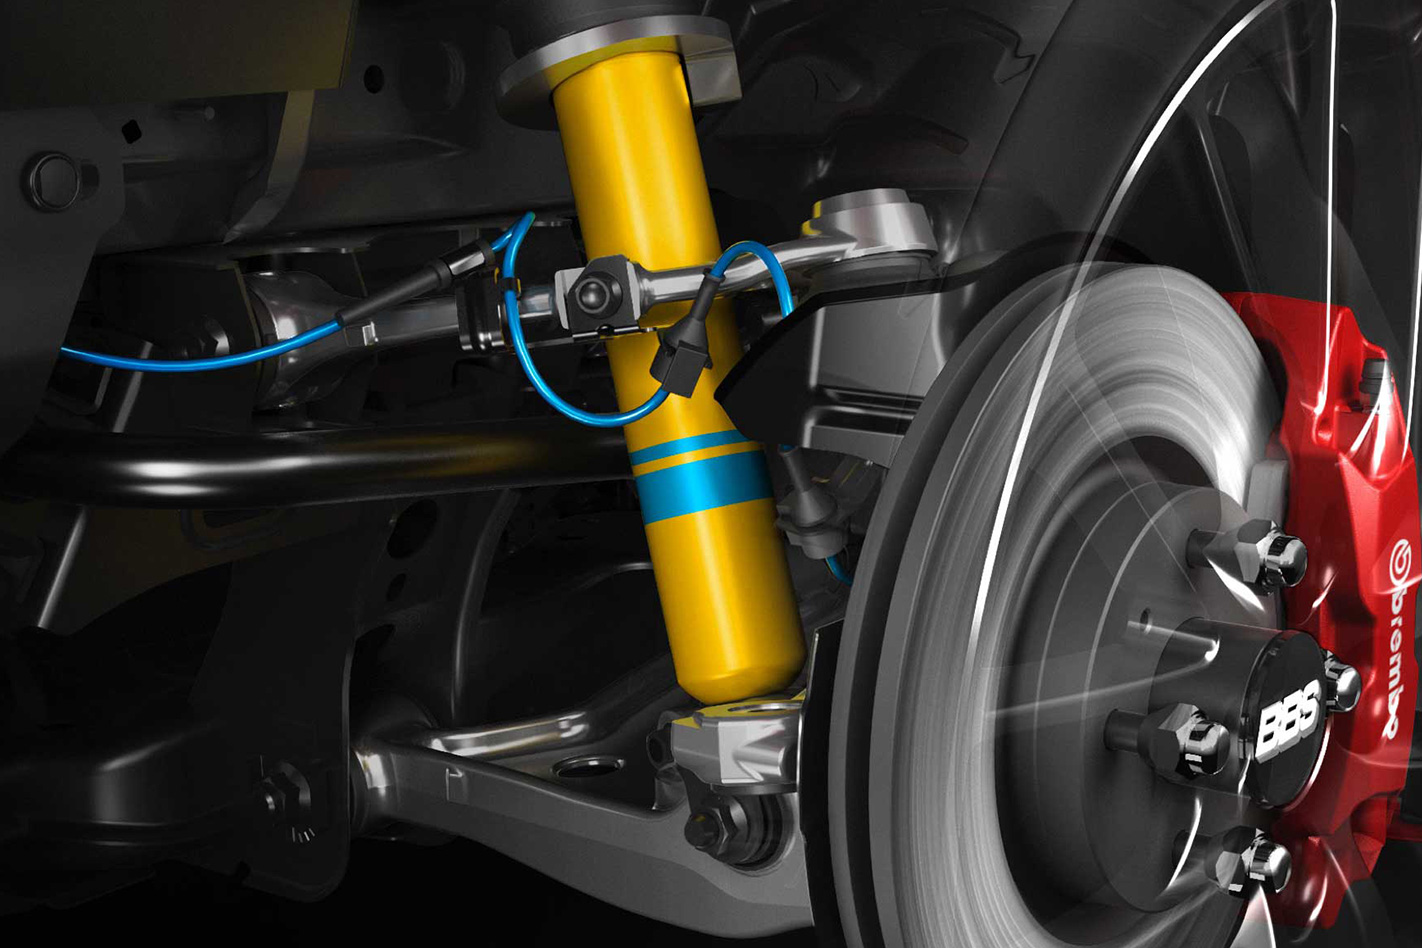 Mazda-MX-5-RF-Limited-Edition-suspension.jpg